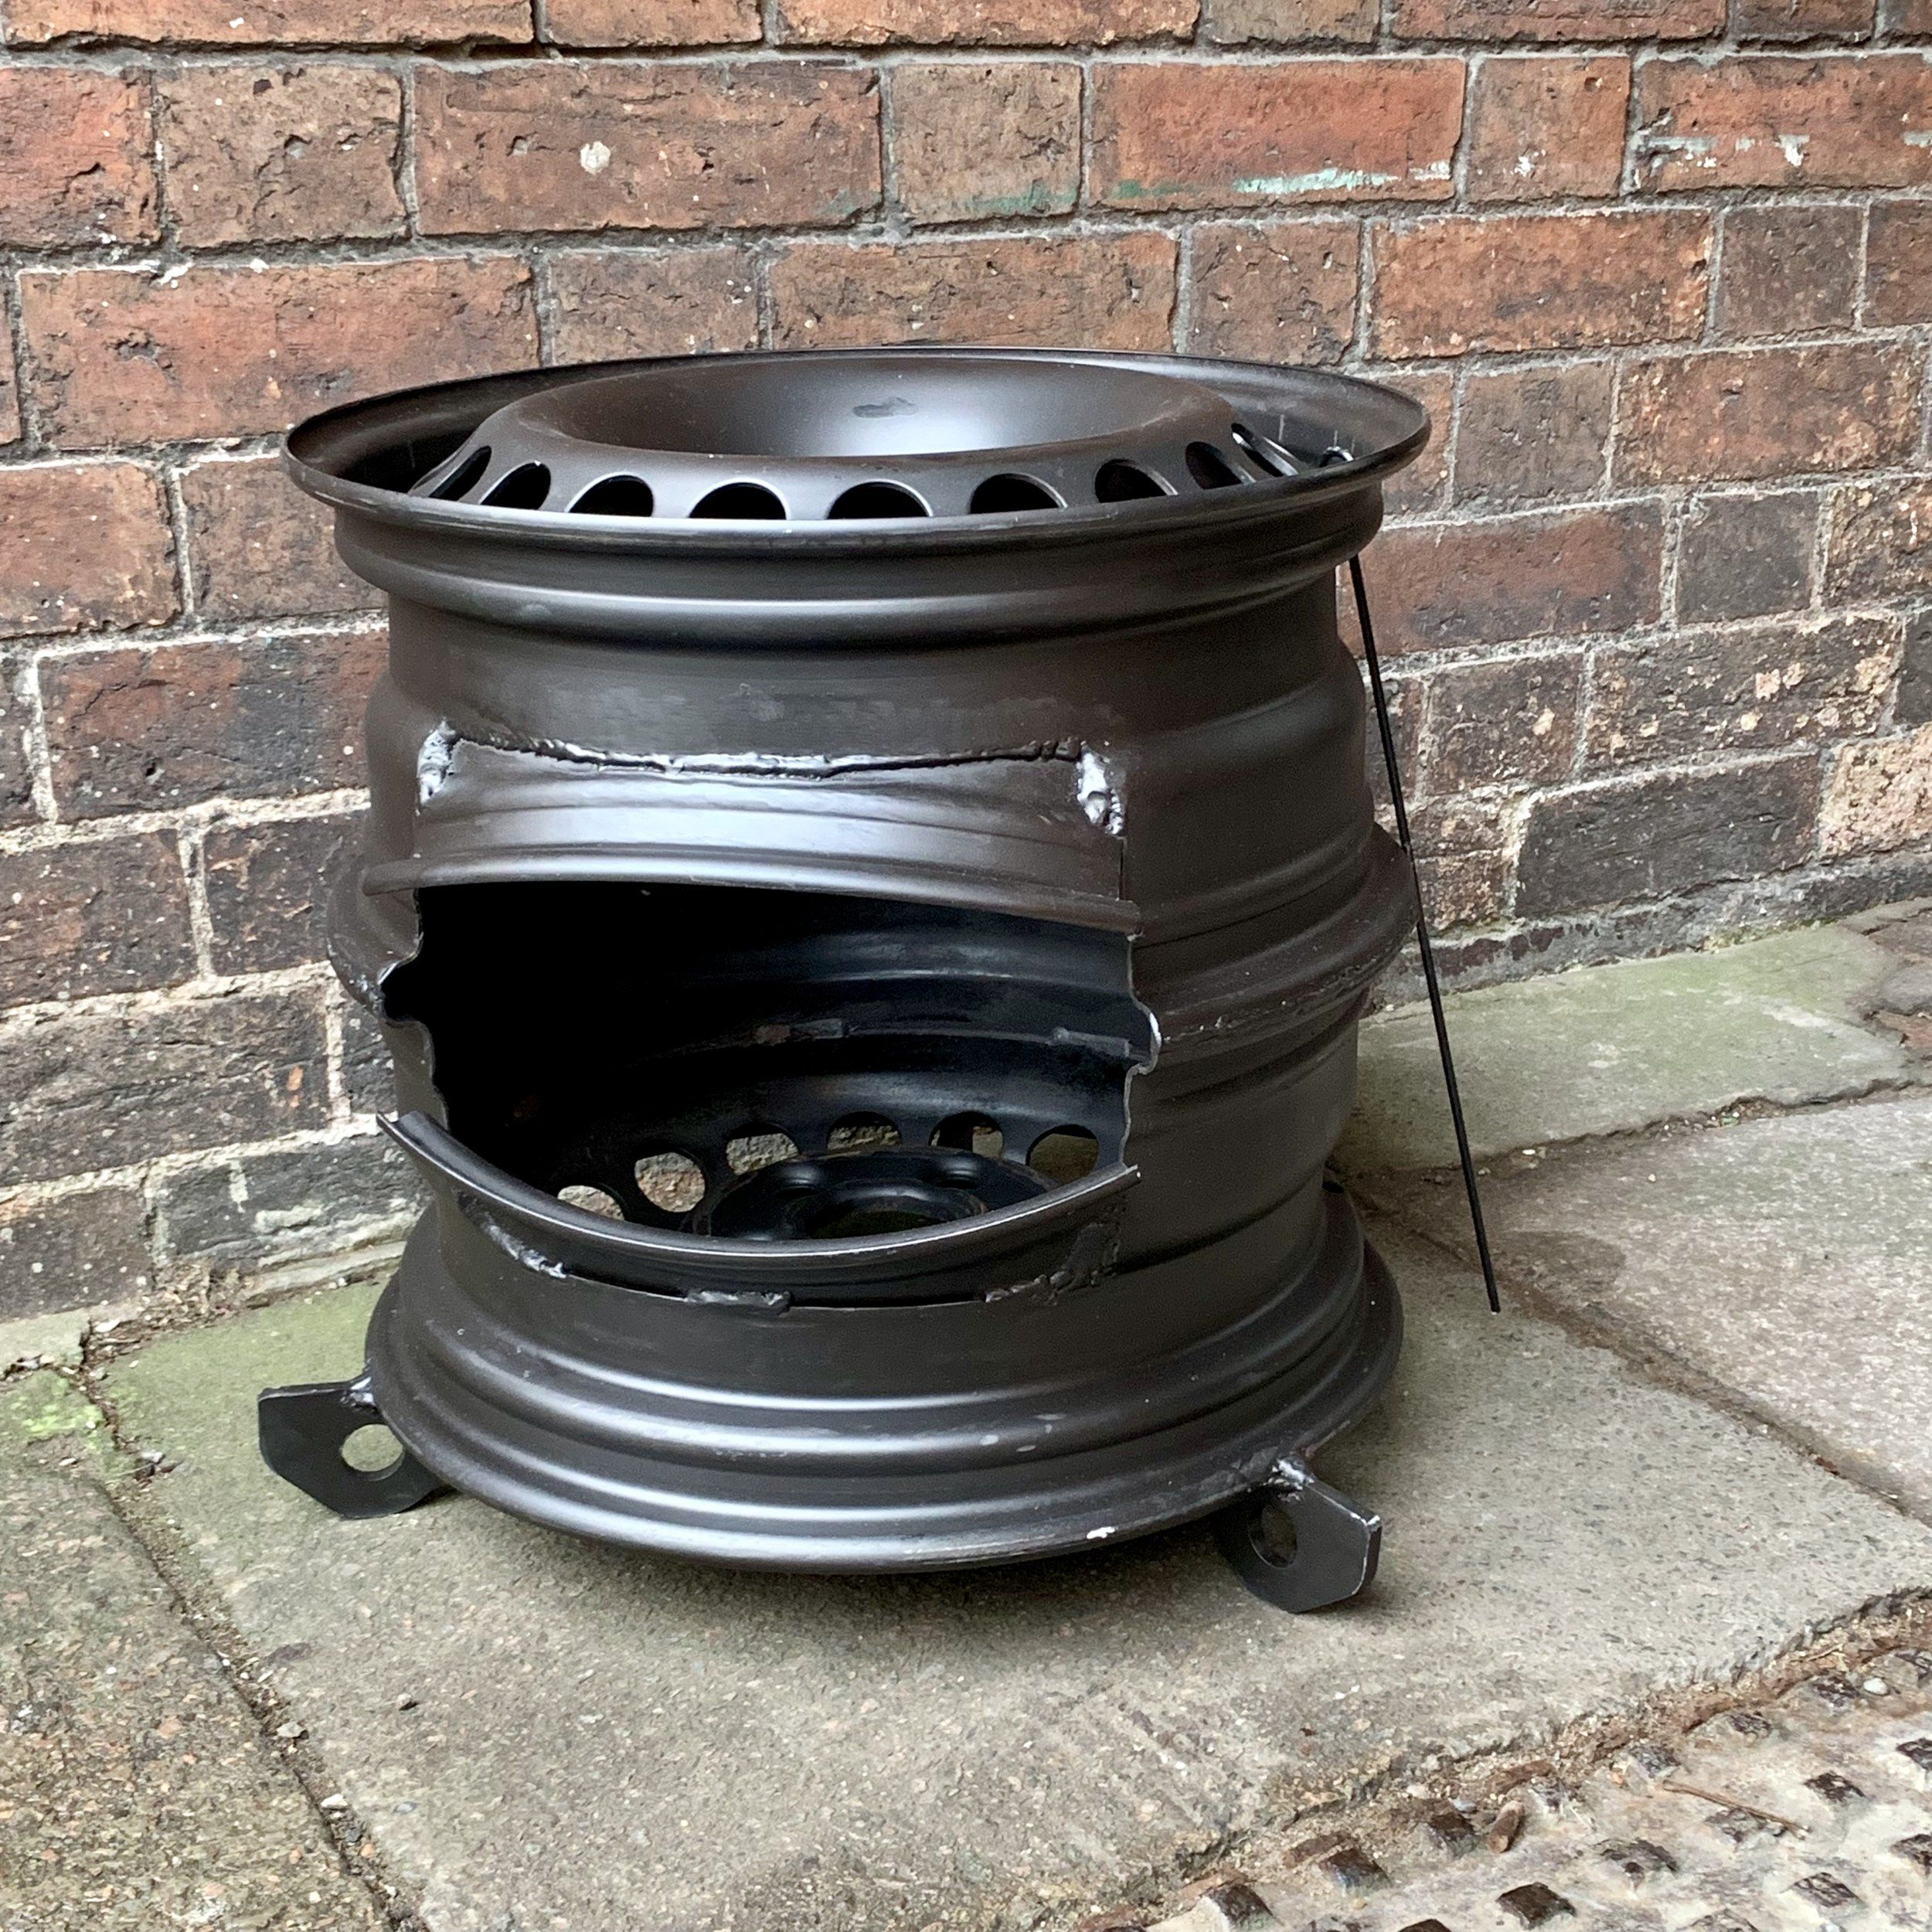 Upcycled Vw Wheels Fire Pit Wheel Fire Pit Fire Pit Wood Stove